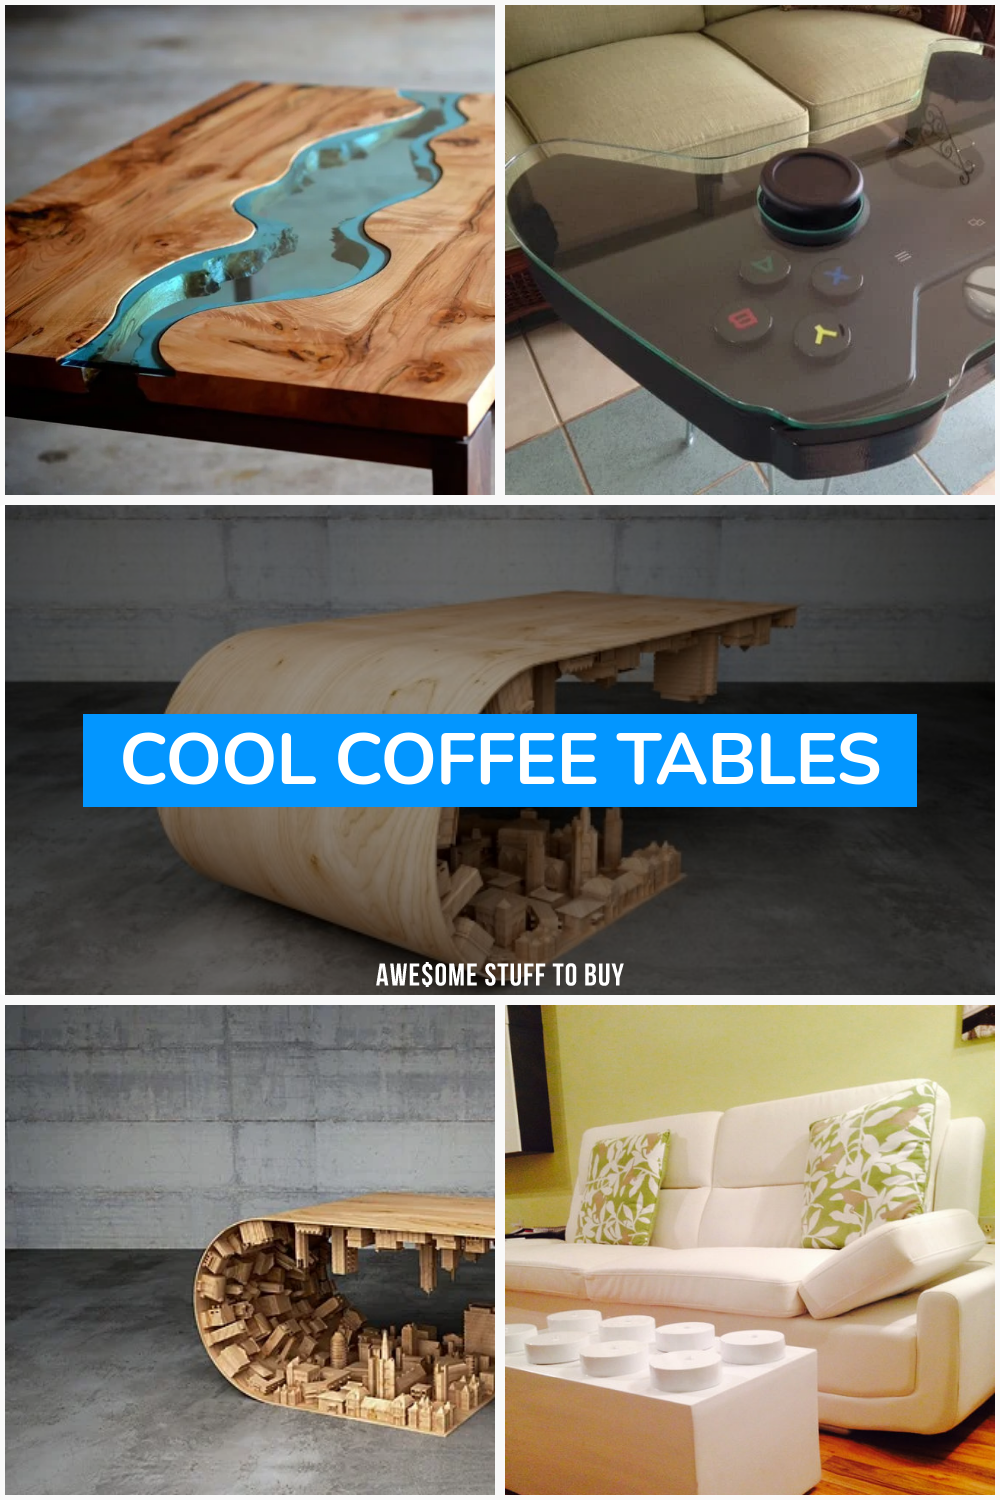 Cool Coffee Tables // Awesome Stuff to Buy